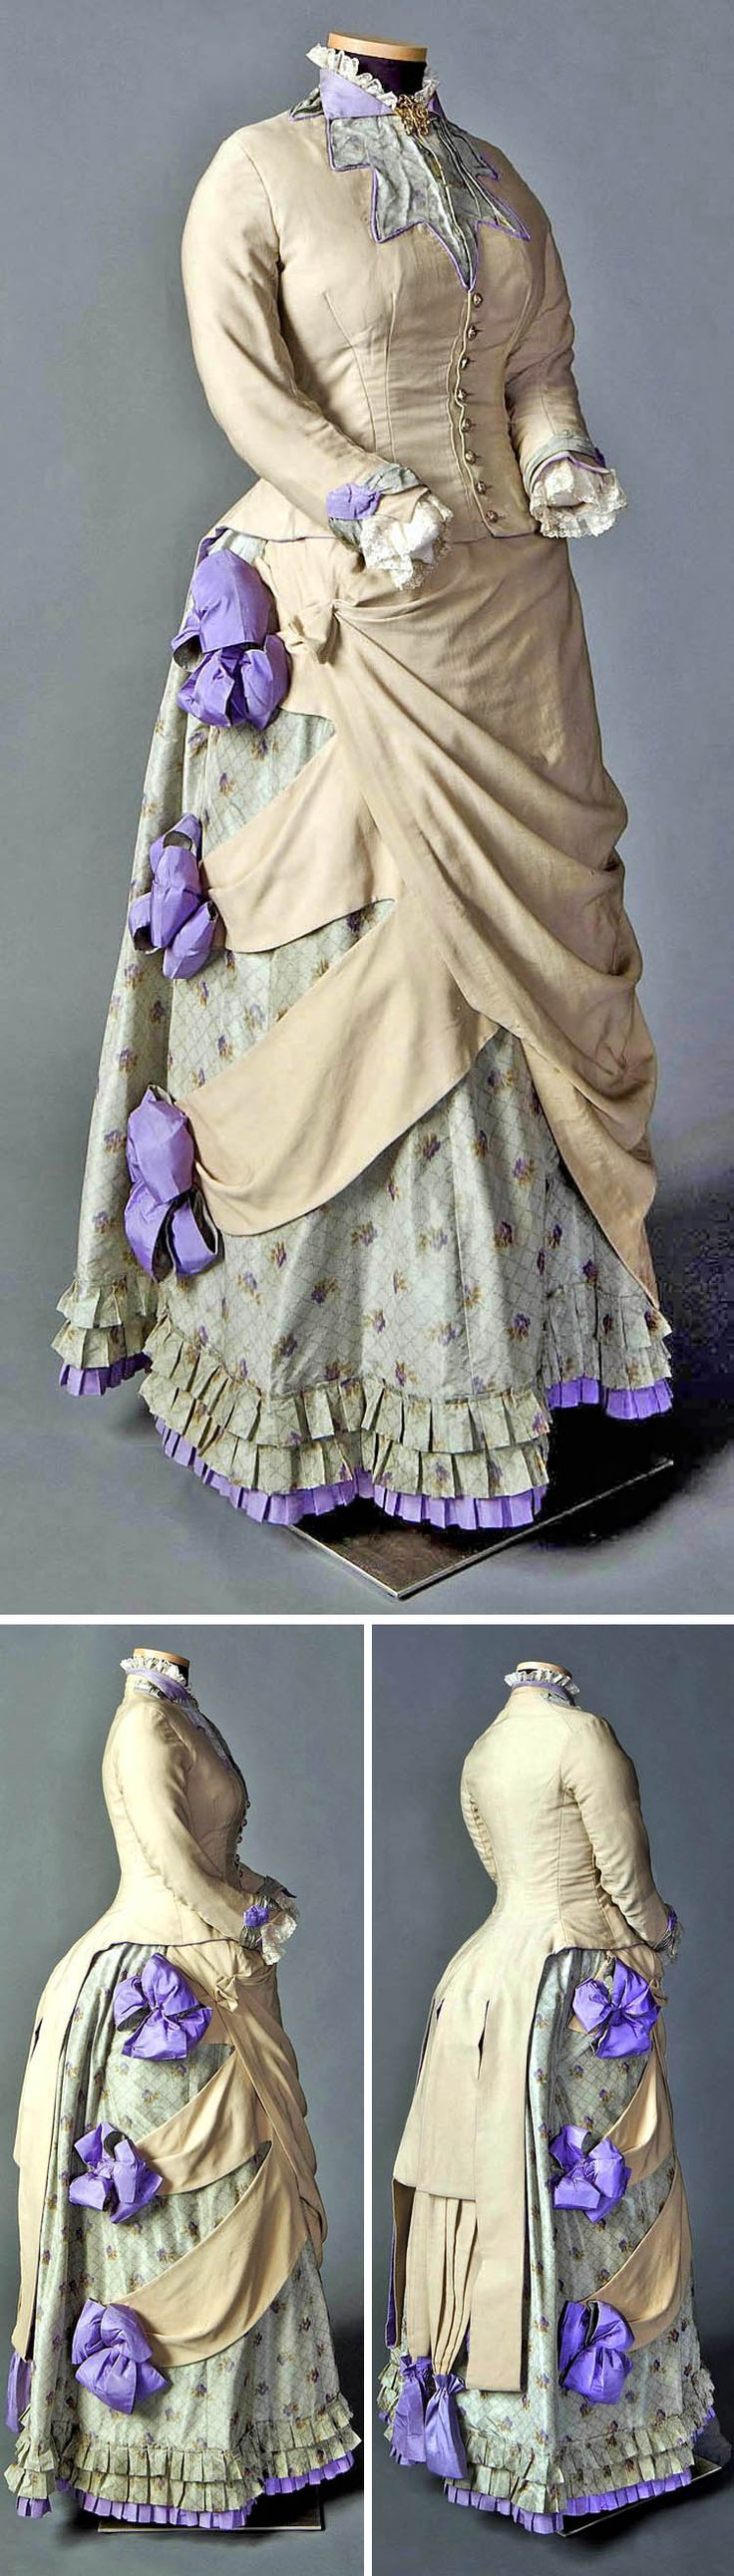 """Two-piece day ensemble in beige, pale green, & purple, North American, ca. 1882-85. Cotton, wool, silk. Fawn wool bodice cut in """"tailor-made"""" style, tightly fitted with center front button closure, long cuffed sleeves, & elaborate tail, to suggest man's tailcoat. These details contrast with lace trim at collar & cuffs, 3 large purple bows on wool swags, & 3 rows of narrow box pleats around skirt hem. Foundation skirt of watered silk taffeta, worn over cage bustle. Smith College Historic…"""